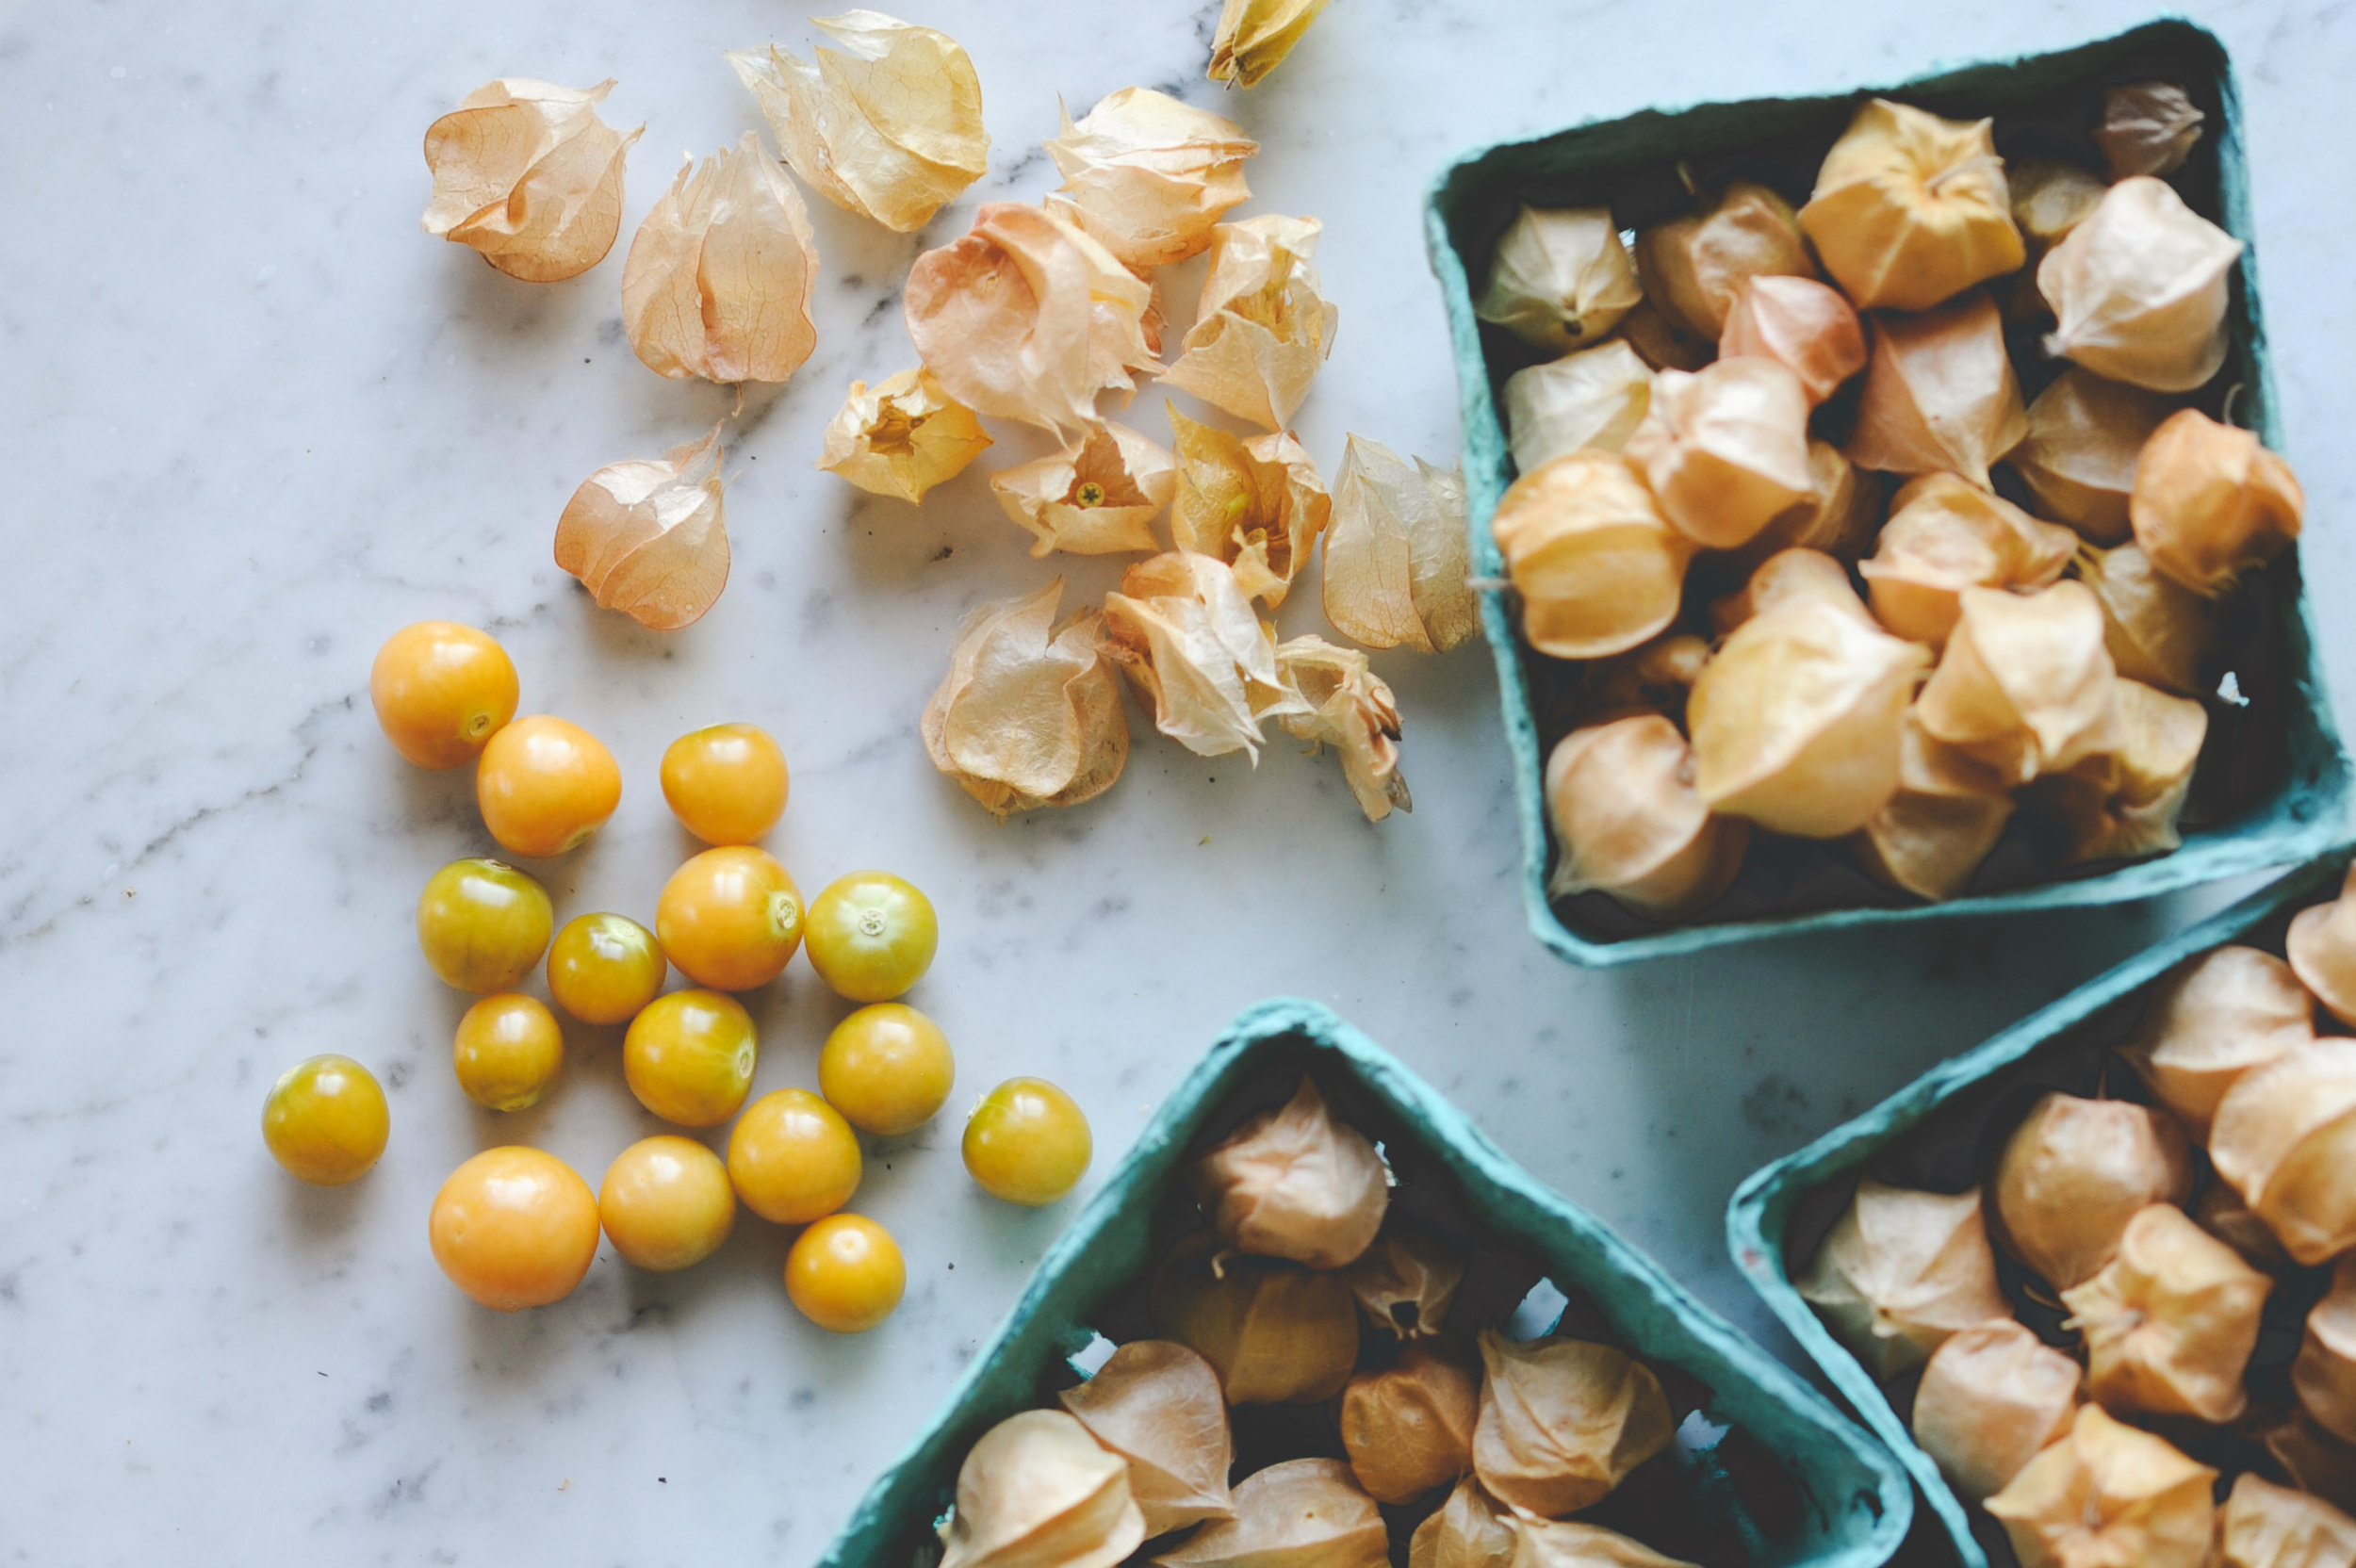 Ground Cherries_Encyclopedia Botanica_Hilary Dahl.jpg